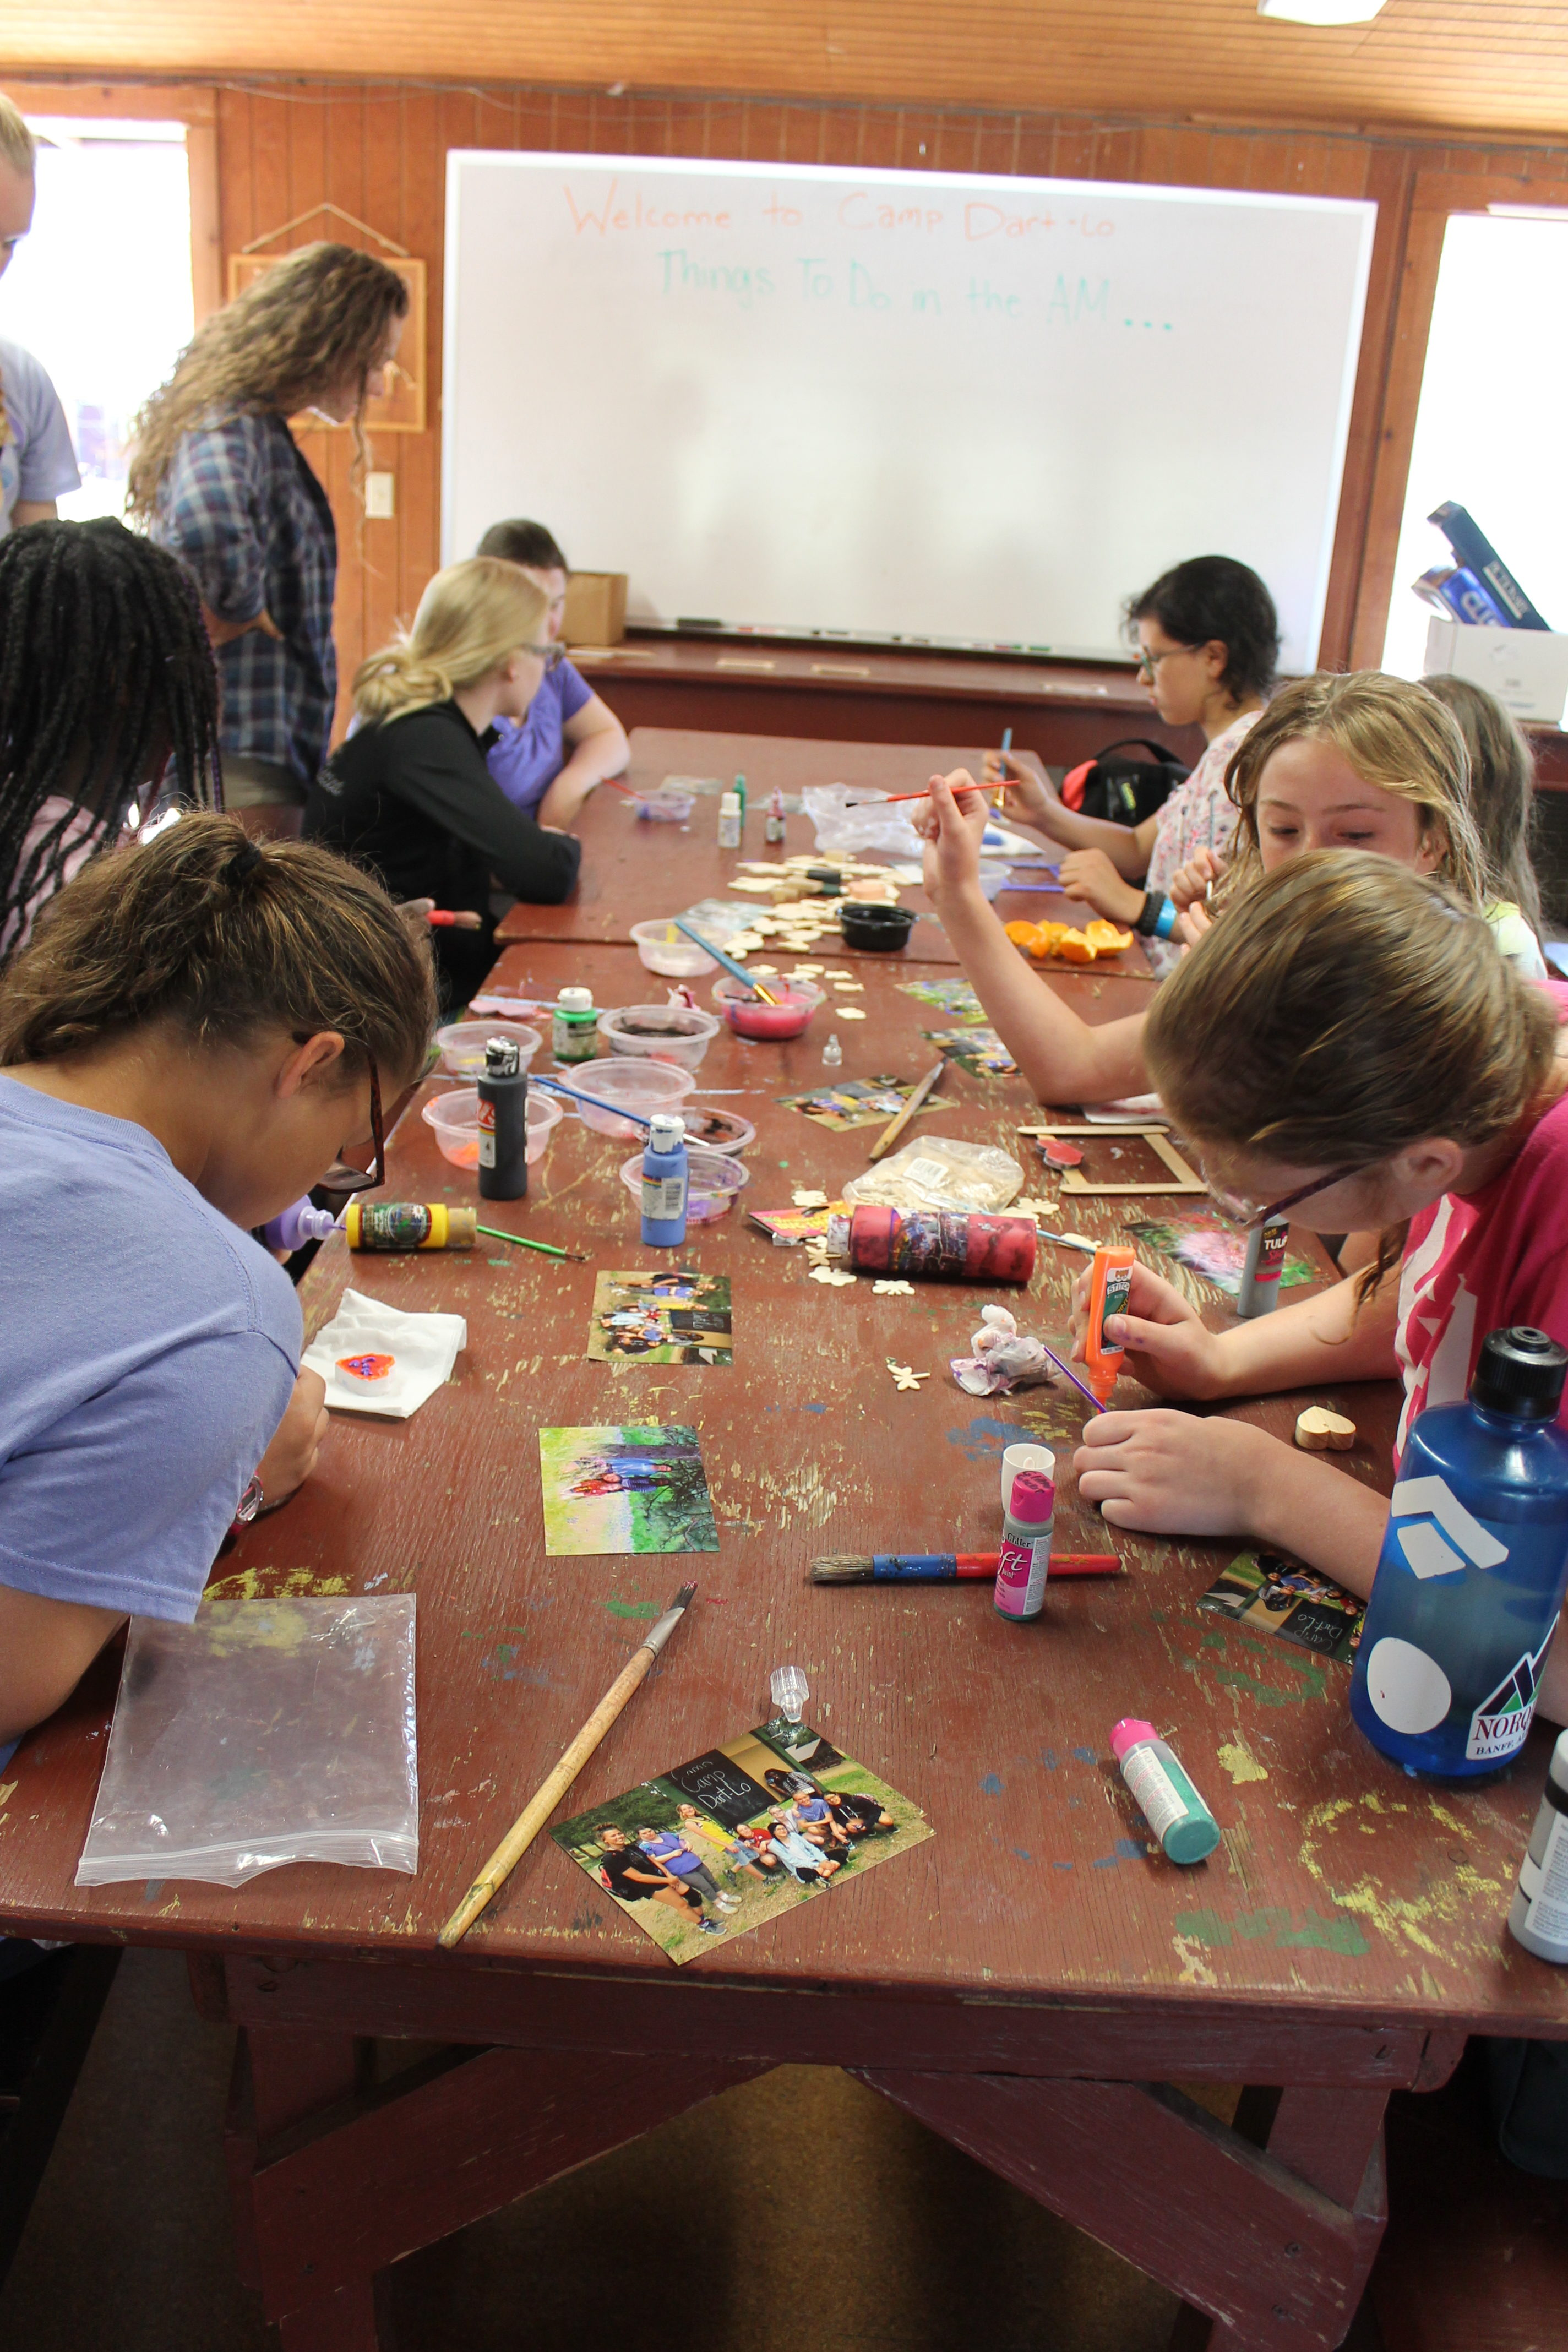 Kids do crafts at a camp table (Photo: Camp Fire Inland Northwest)